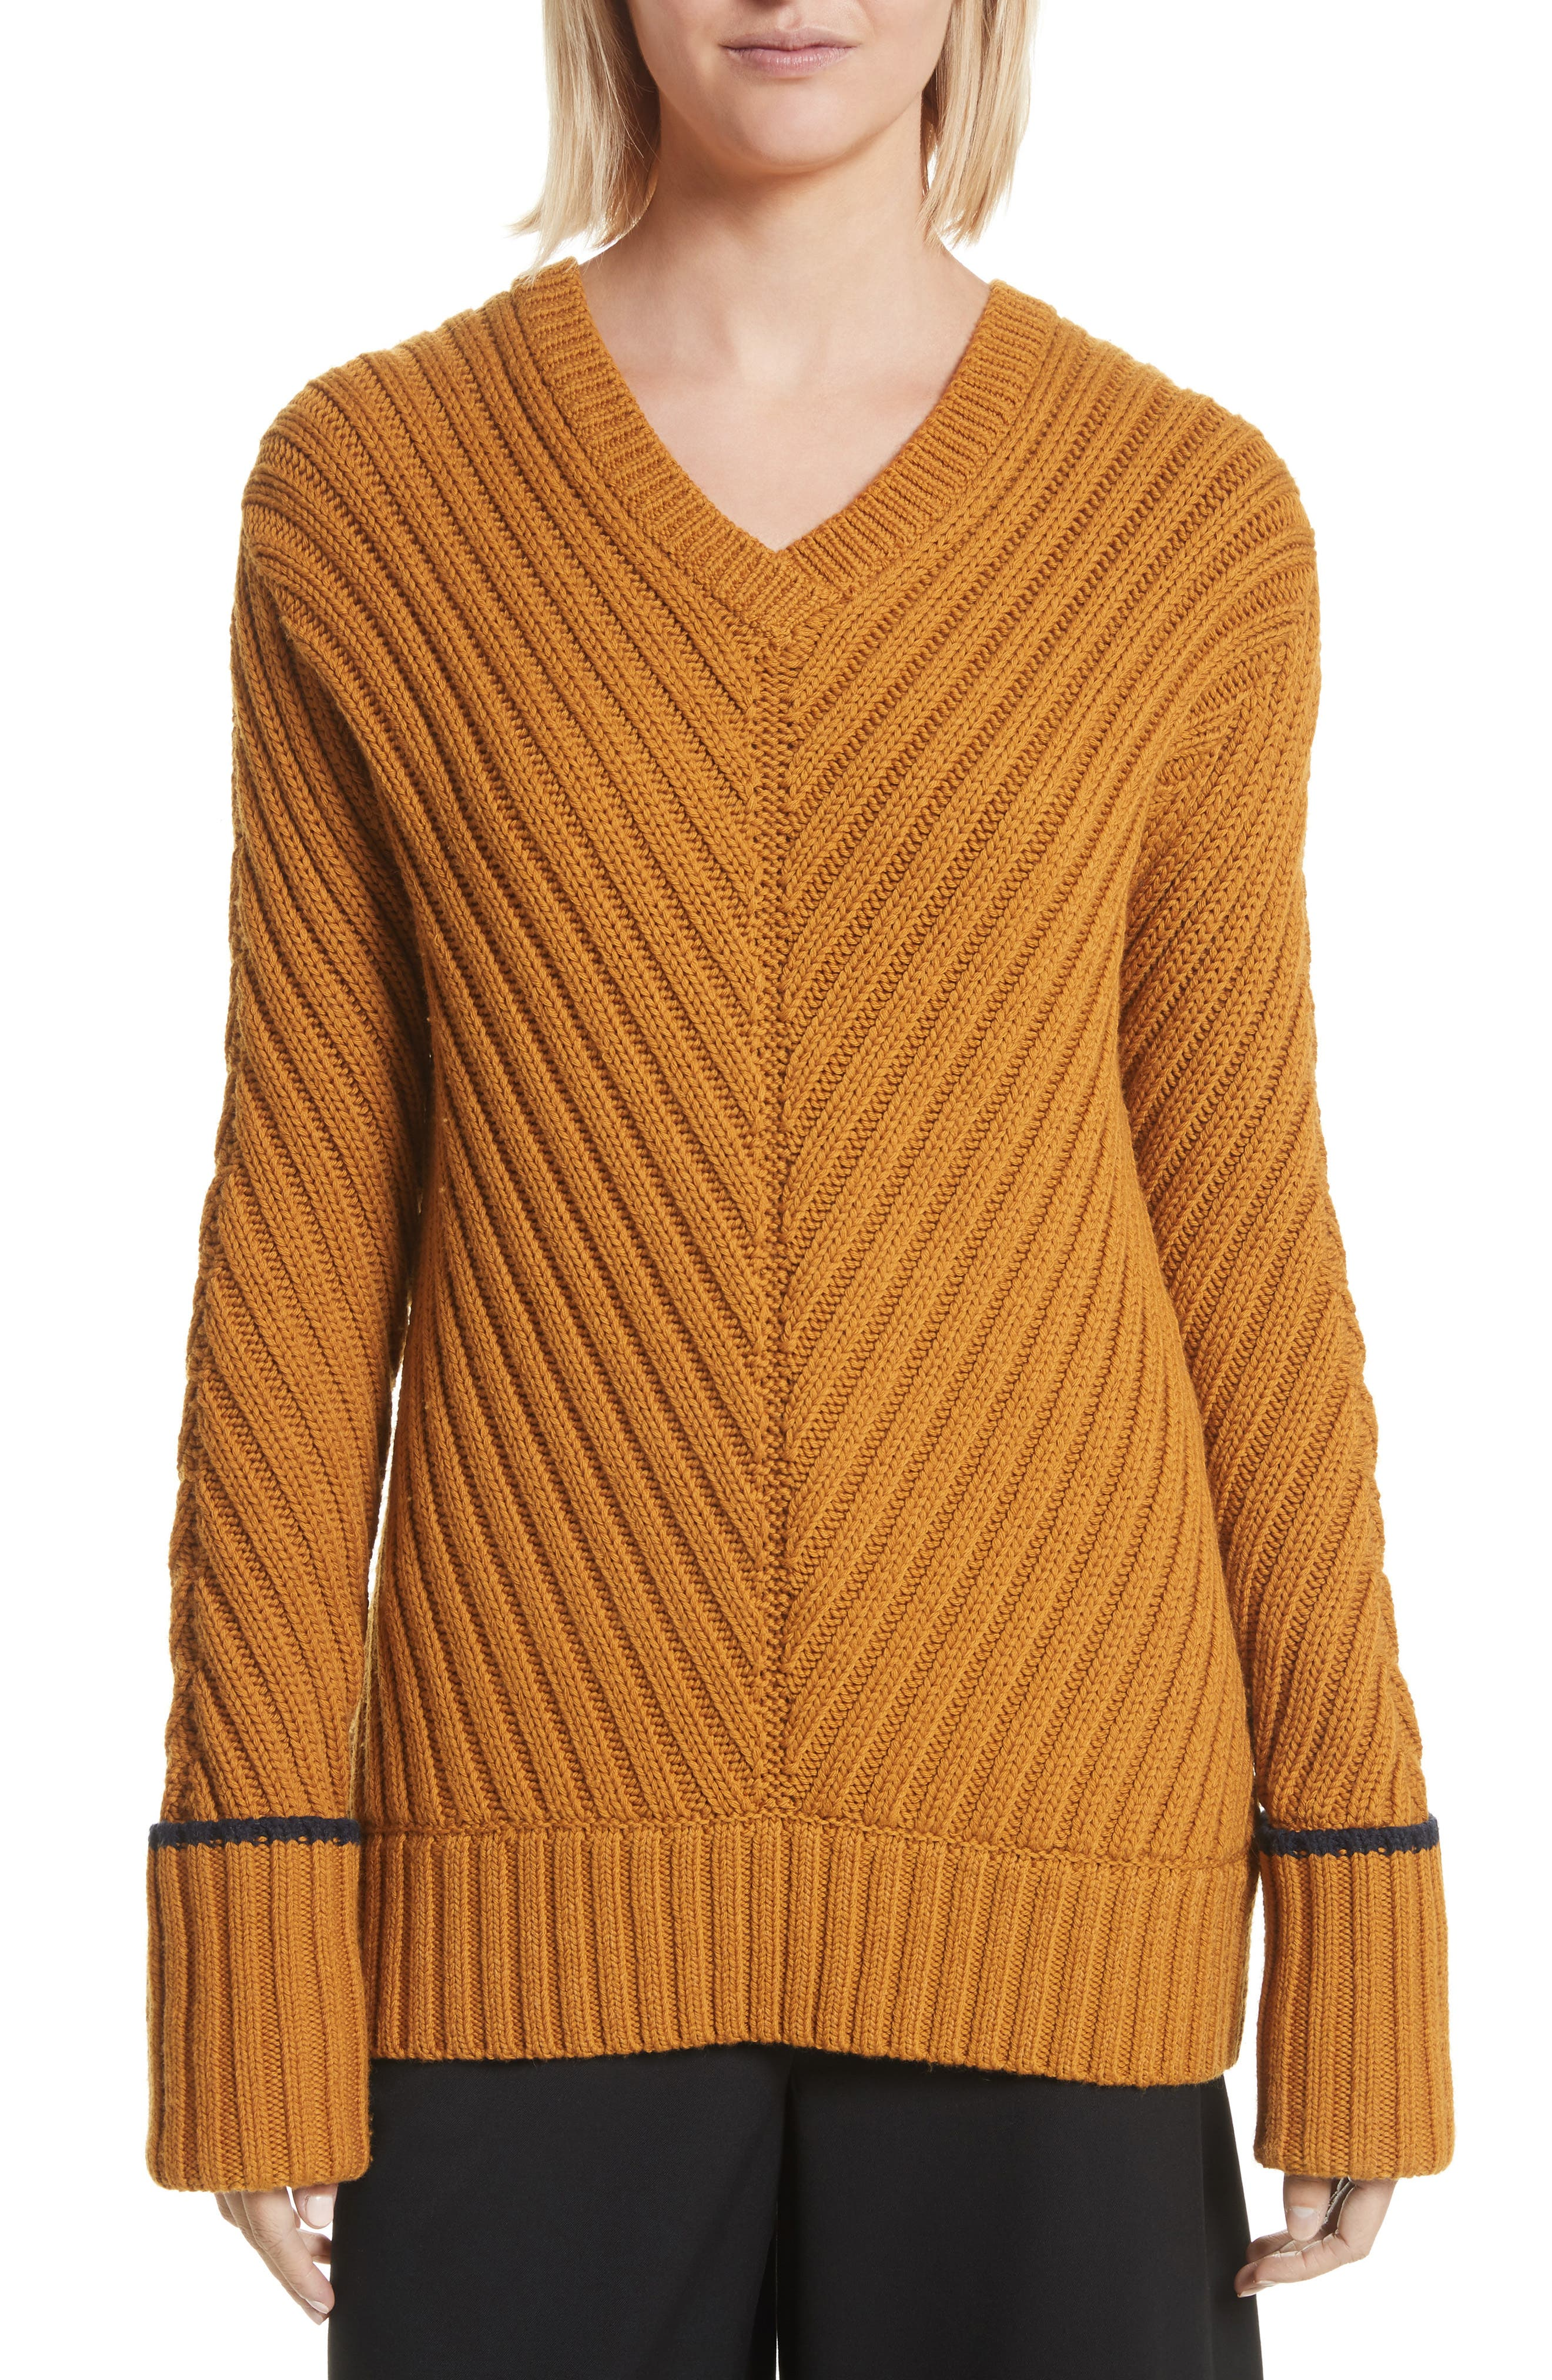 Alternate Image 1 Selected - GREY Jason Wu Rib Knit Wool Blend Sweater